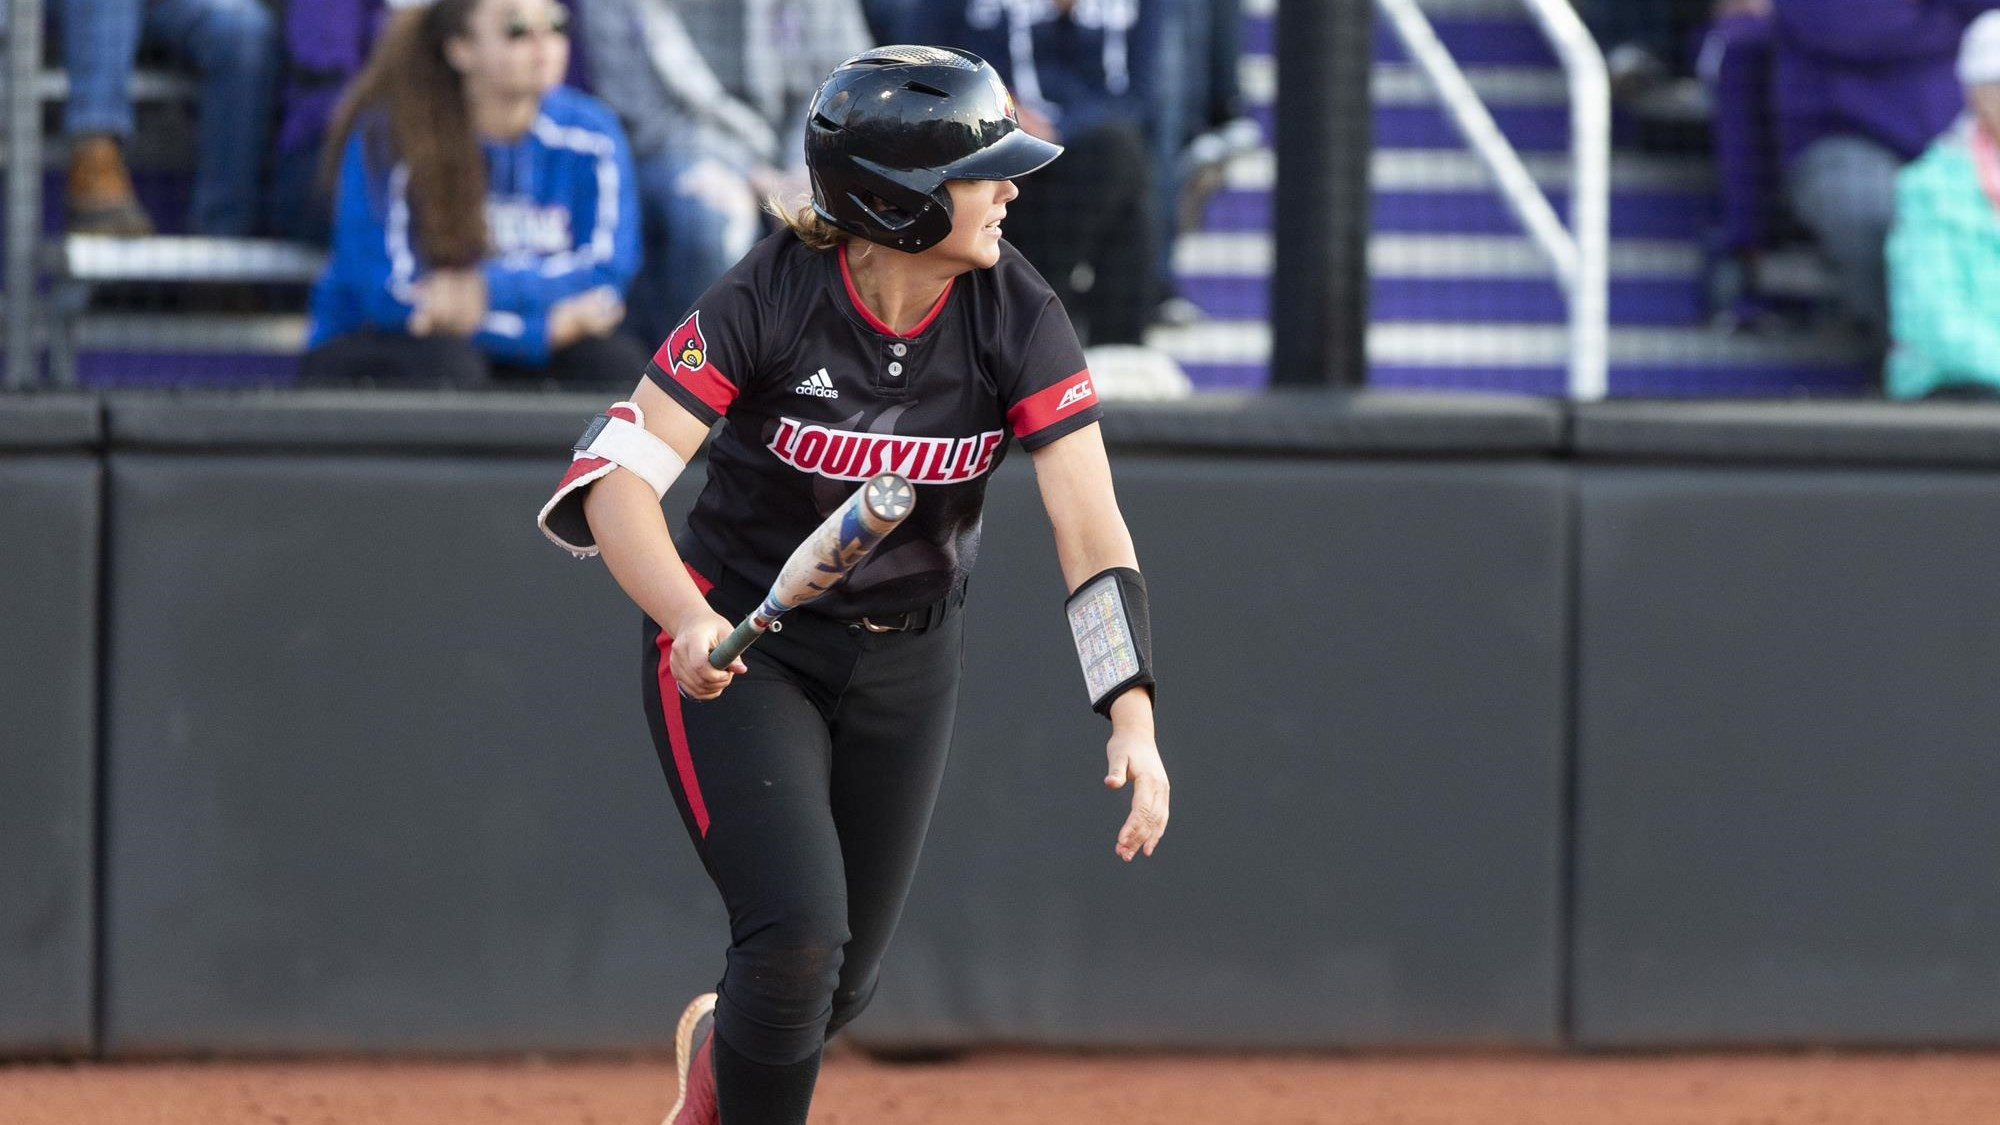 Softball Adds Another Transfer In Kyra Snyder From Louisville - Long